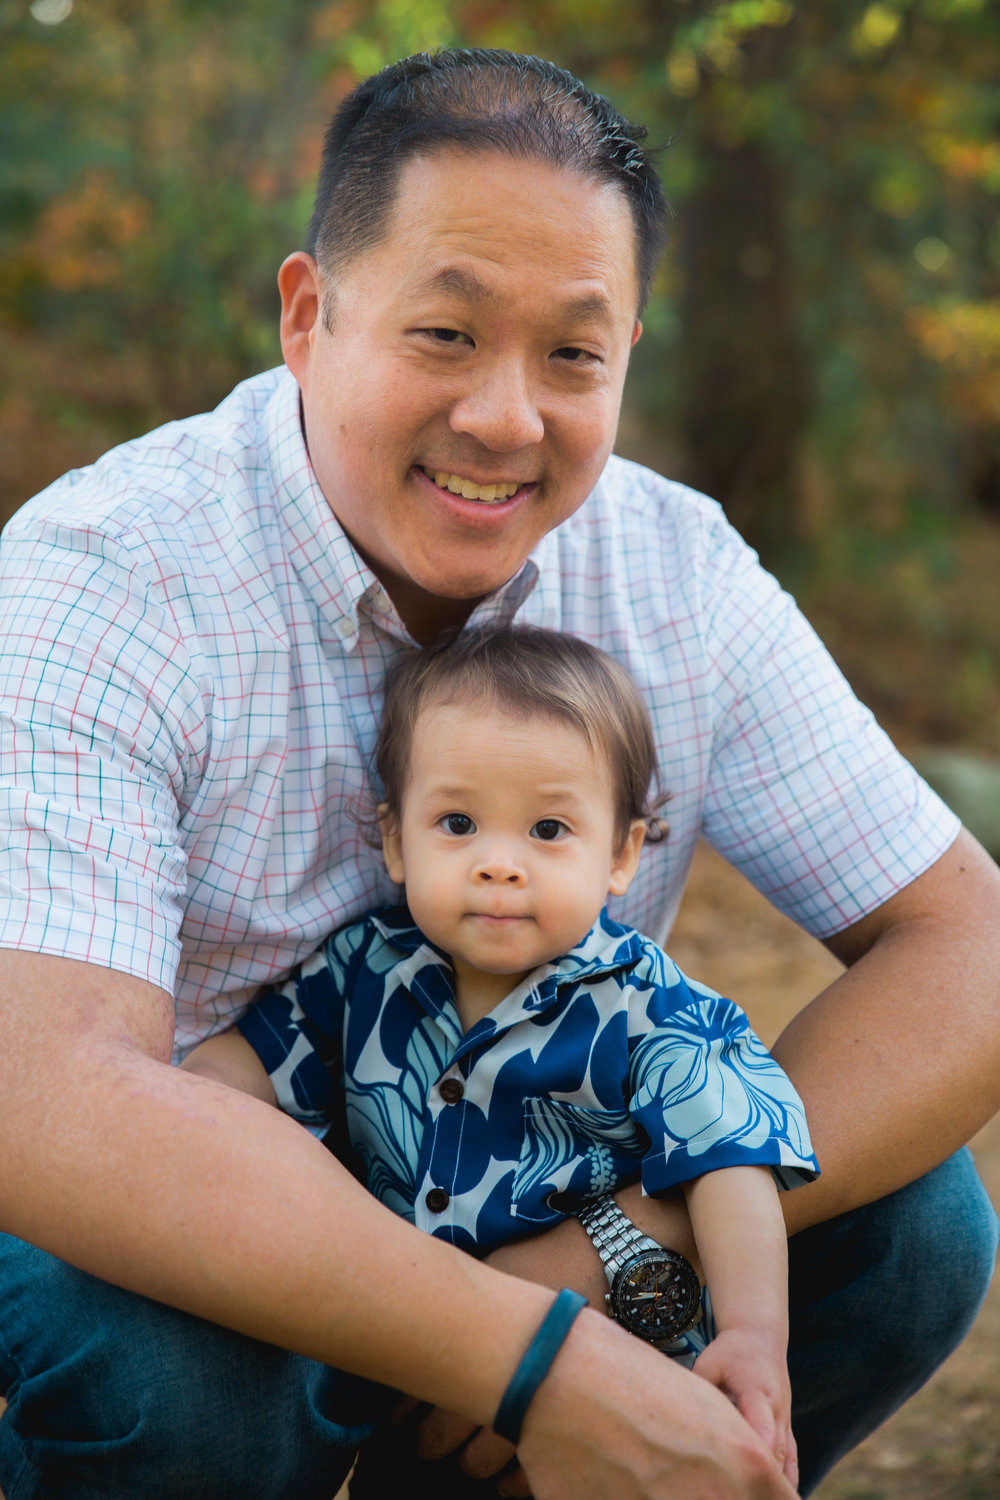 Greater Boston family photographer Joy Uyeno Sudbury father and toddler son on a warm fall day